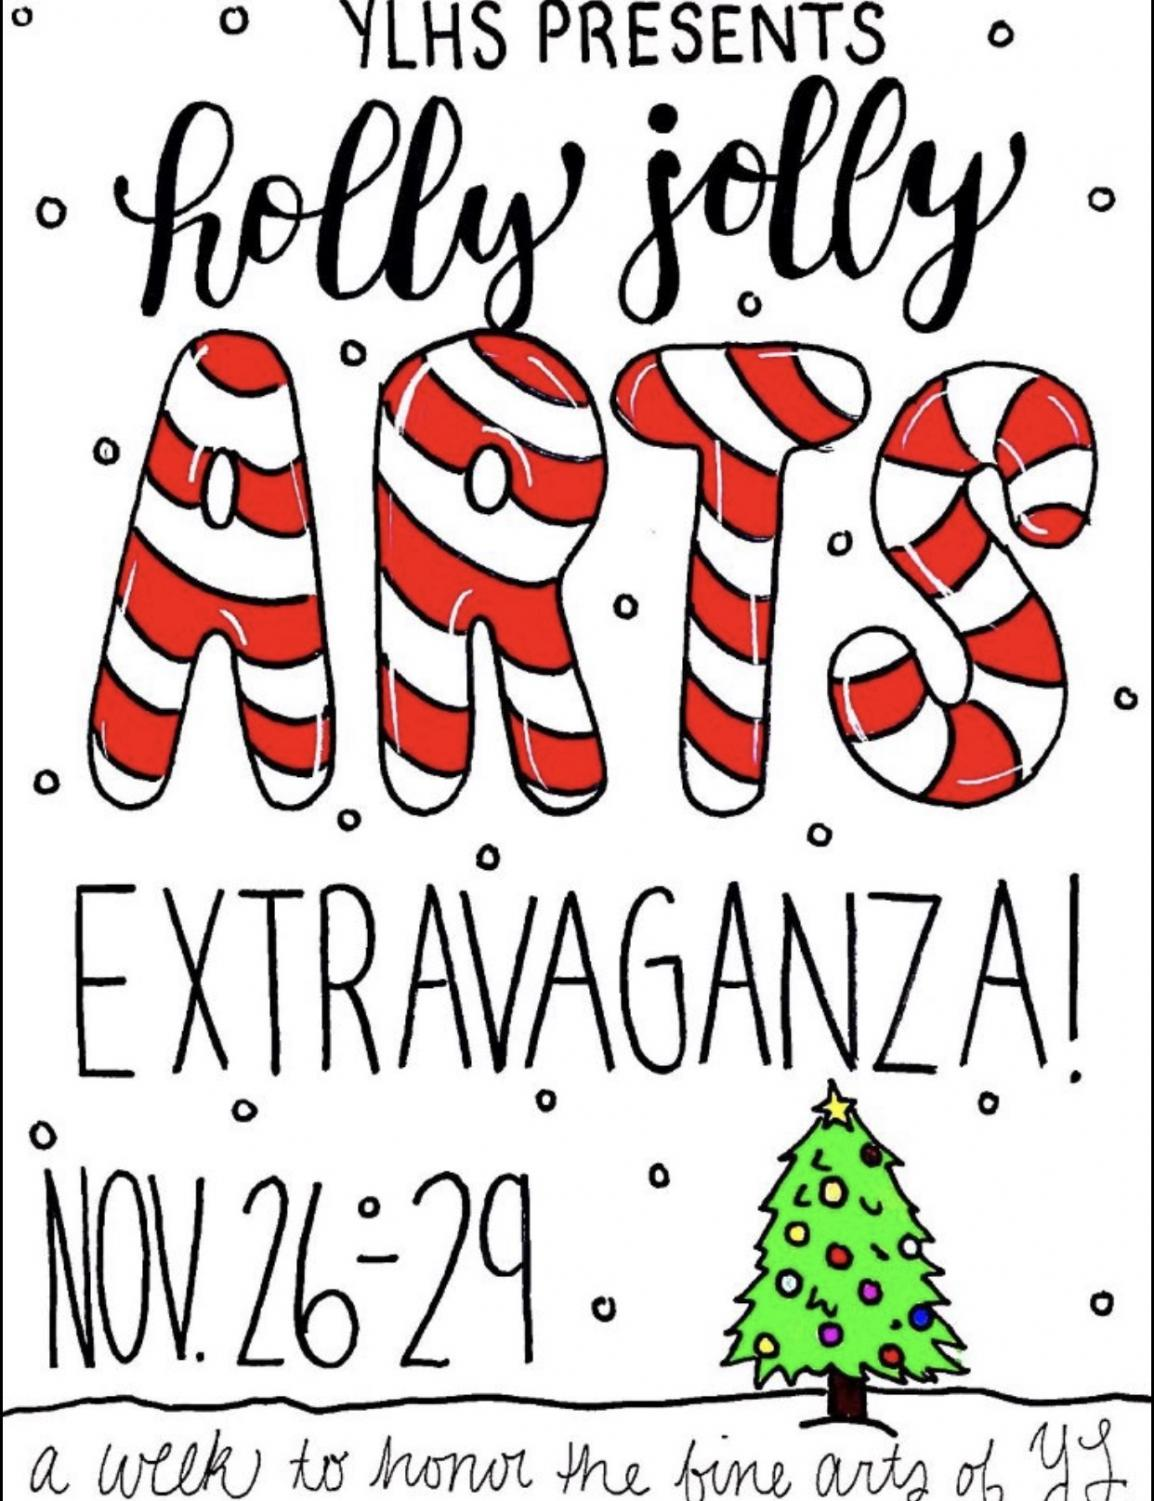 YLHS presents the Holly Jolly Arts Extravaganza, a week dedicated to arts appreciation.